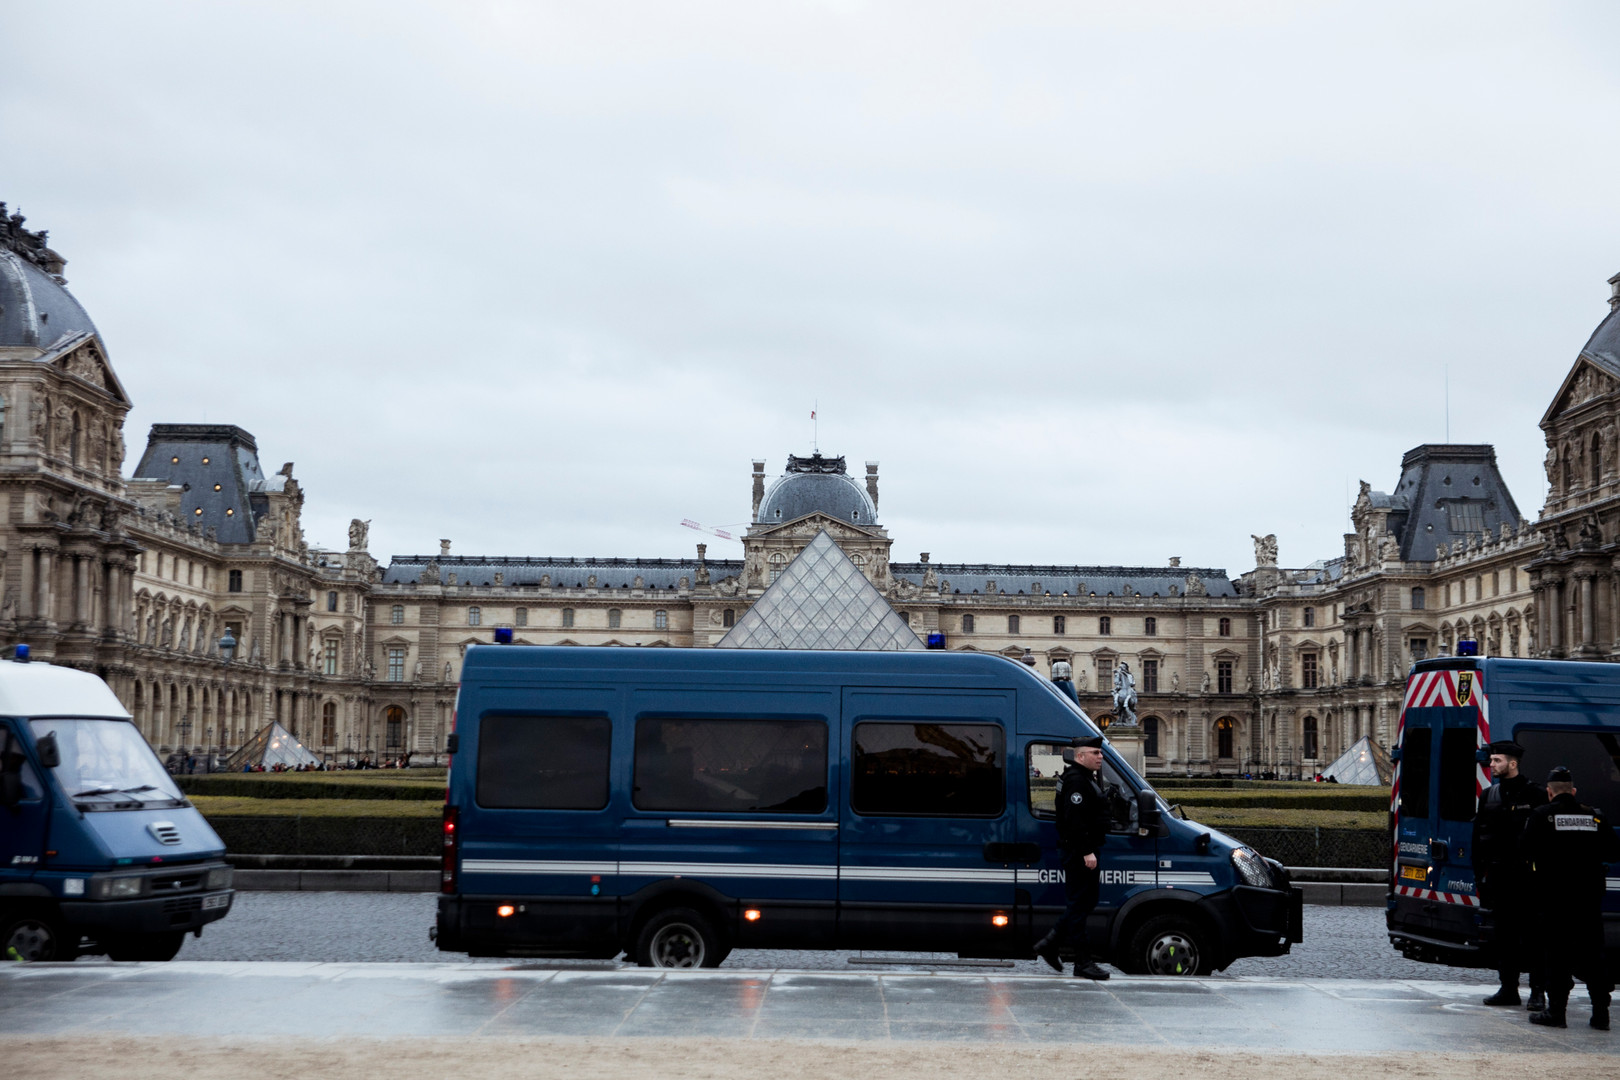 Police surrounding the Louvre square right after avoiding a terrorist attack in the Louvre Gallery, Paris. February 3rd, 2017